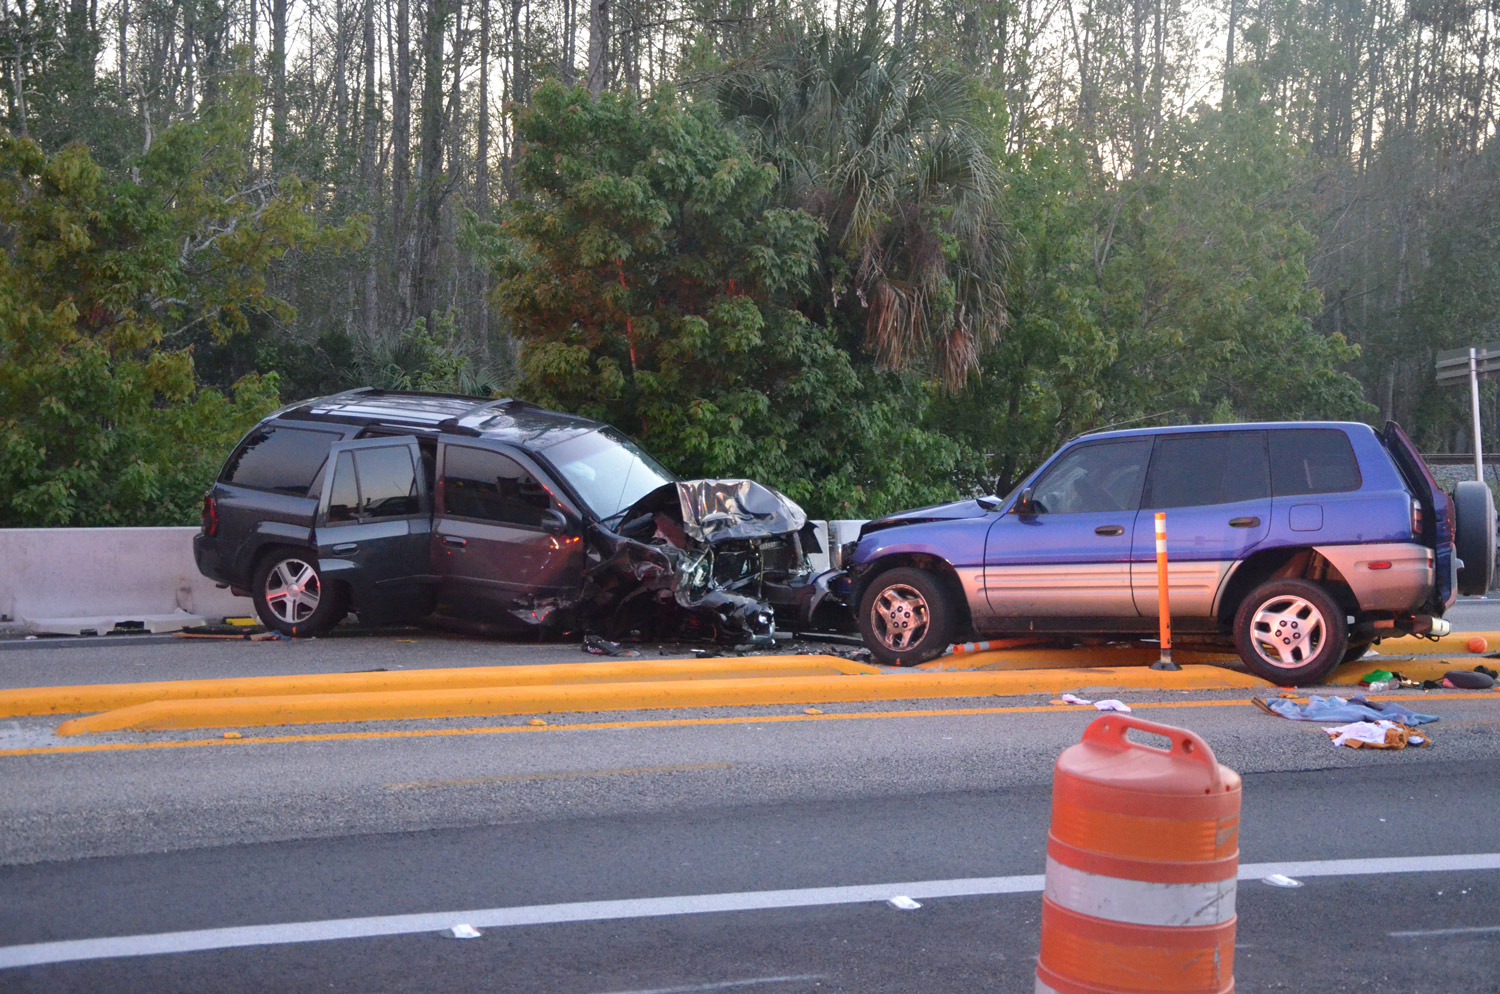 A family of five, including a 13-year-old girl and a toddler, were in the blue Toyota to the right and an off-duty Daytona Beach police officer was in the Chevy when the vehicles crashed this evening on U.S. 1 in the construction zone near Old Dixie Highway. Click on the image for larger view. (© FlaglerLive)